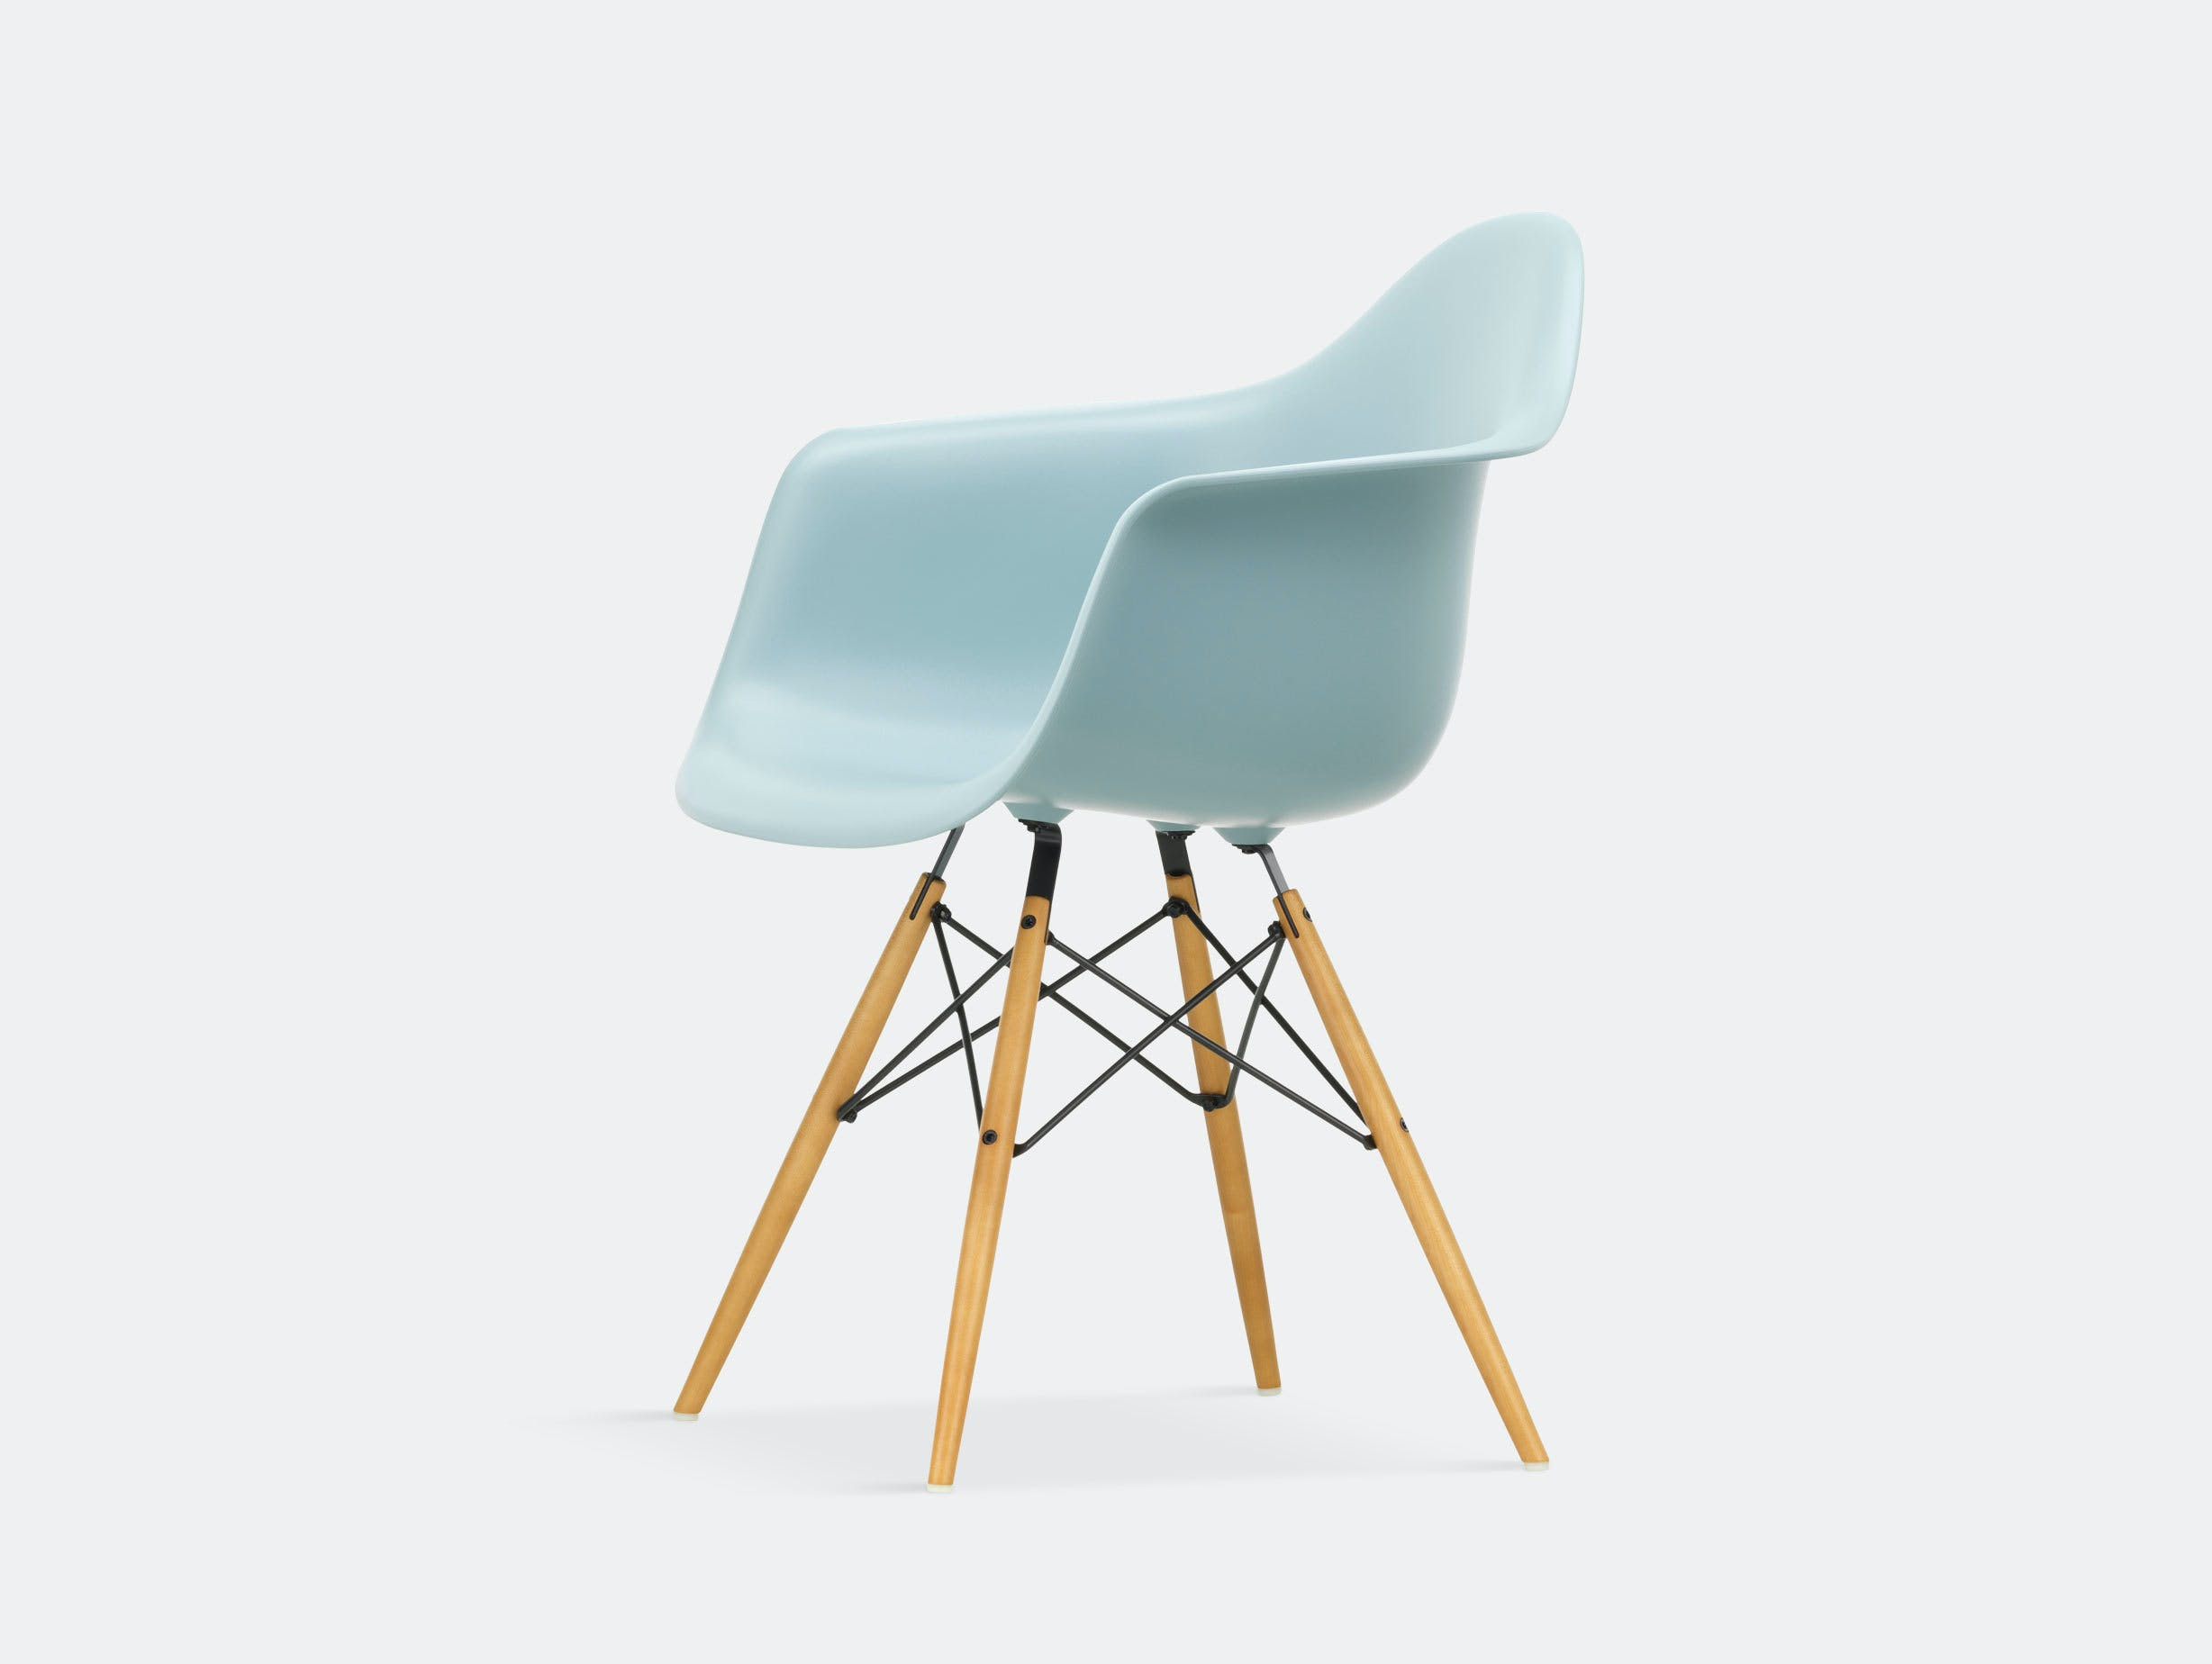 Vitra Eames Plastic Armchair DAW ice grey golden maple legs